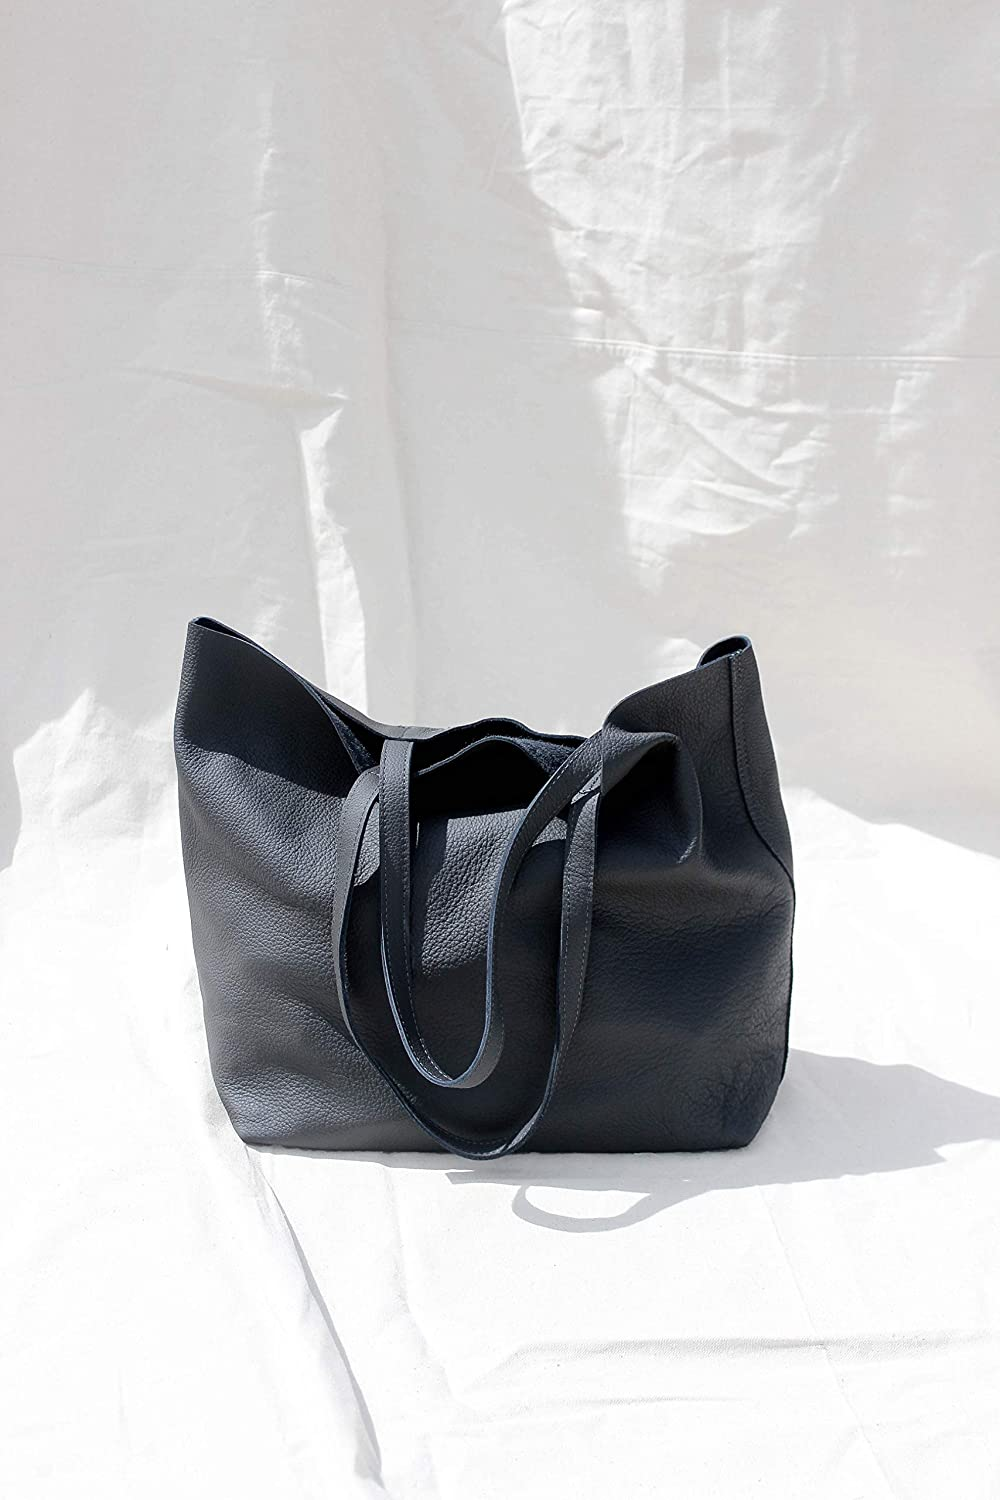 6789b9fda73 Amazon.com: Asphalt Grey - Oversized Leather Tote Bag: Handmade